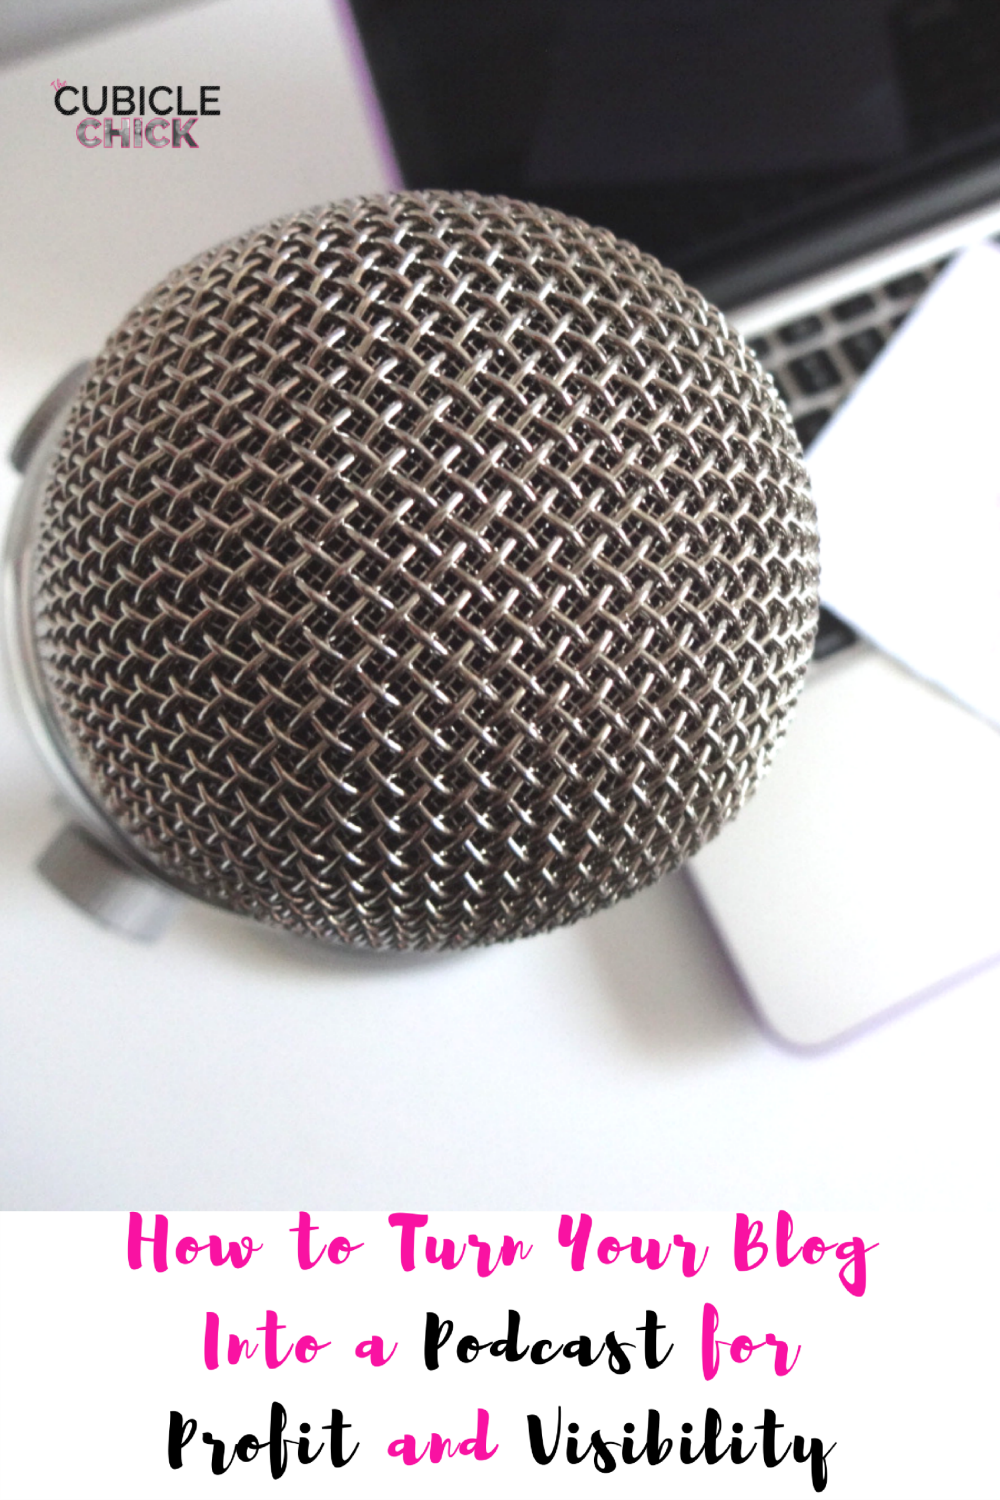 how-to-turn-your-blog-into-a-podcast-for-profit-and-visibility